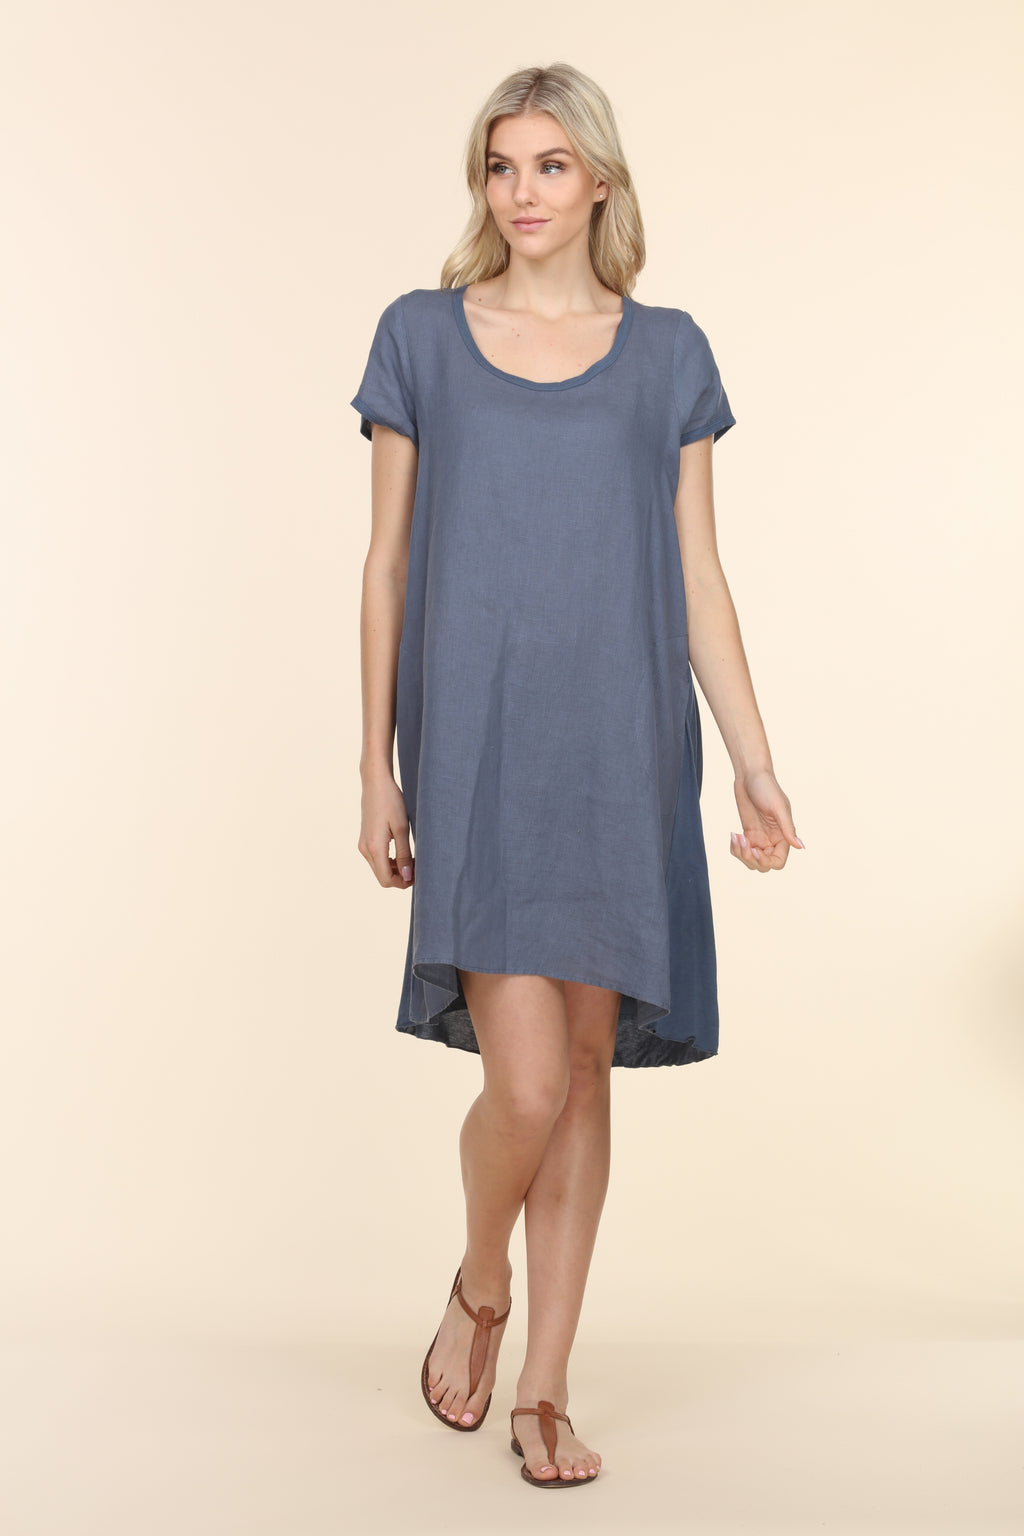 Scoop Mini Dress - Deep Sea